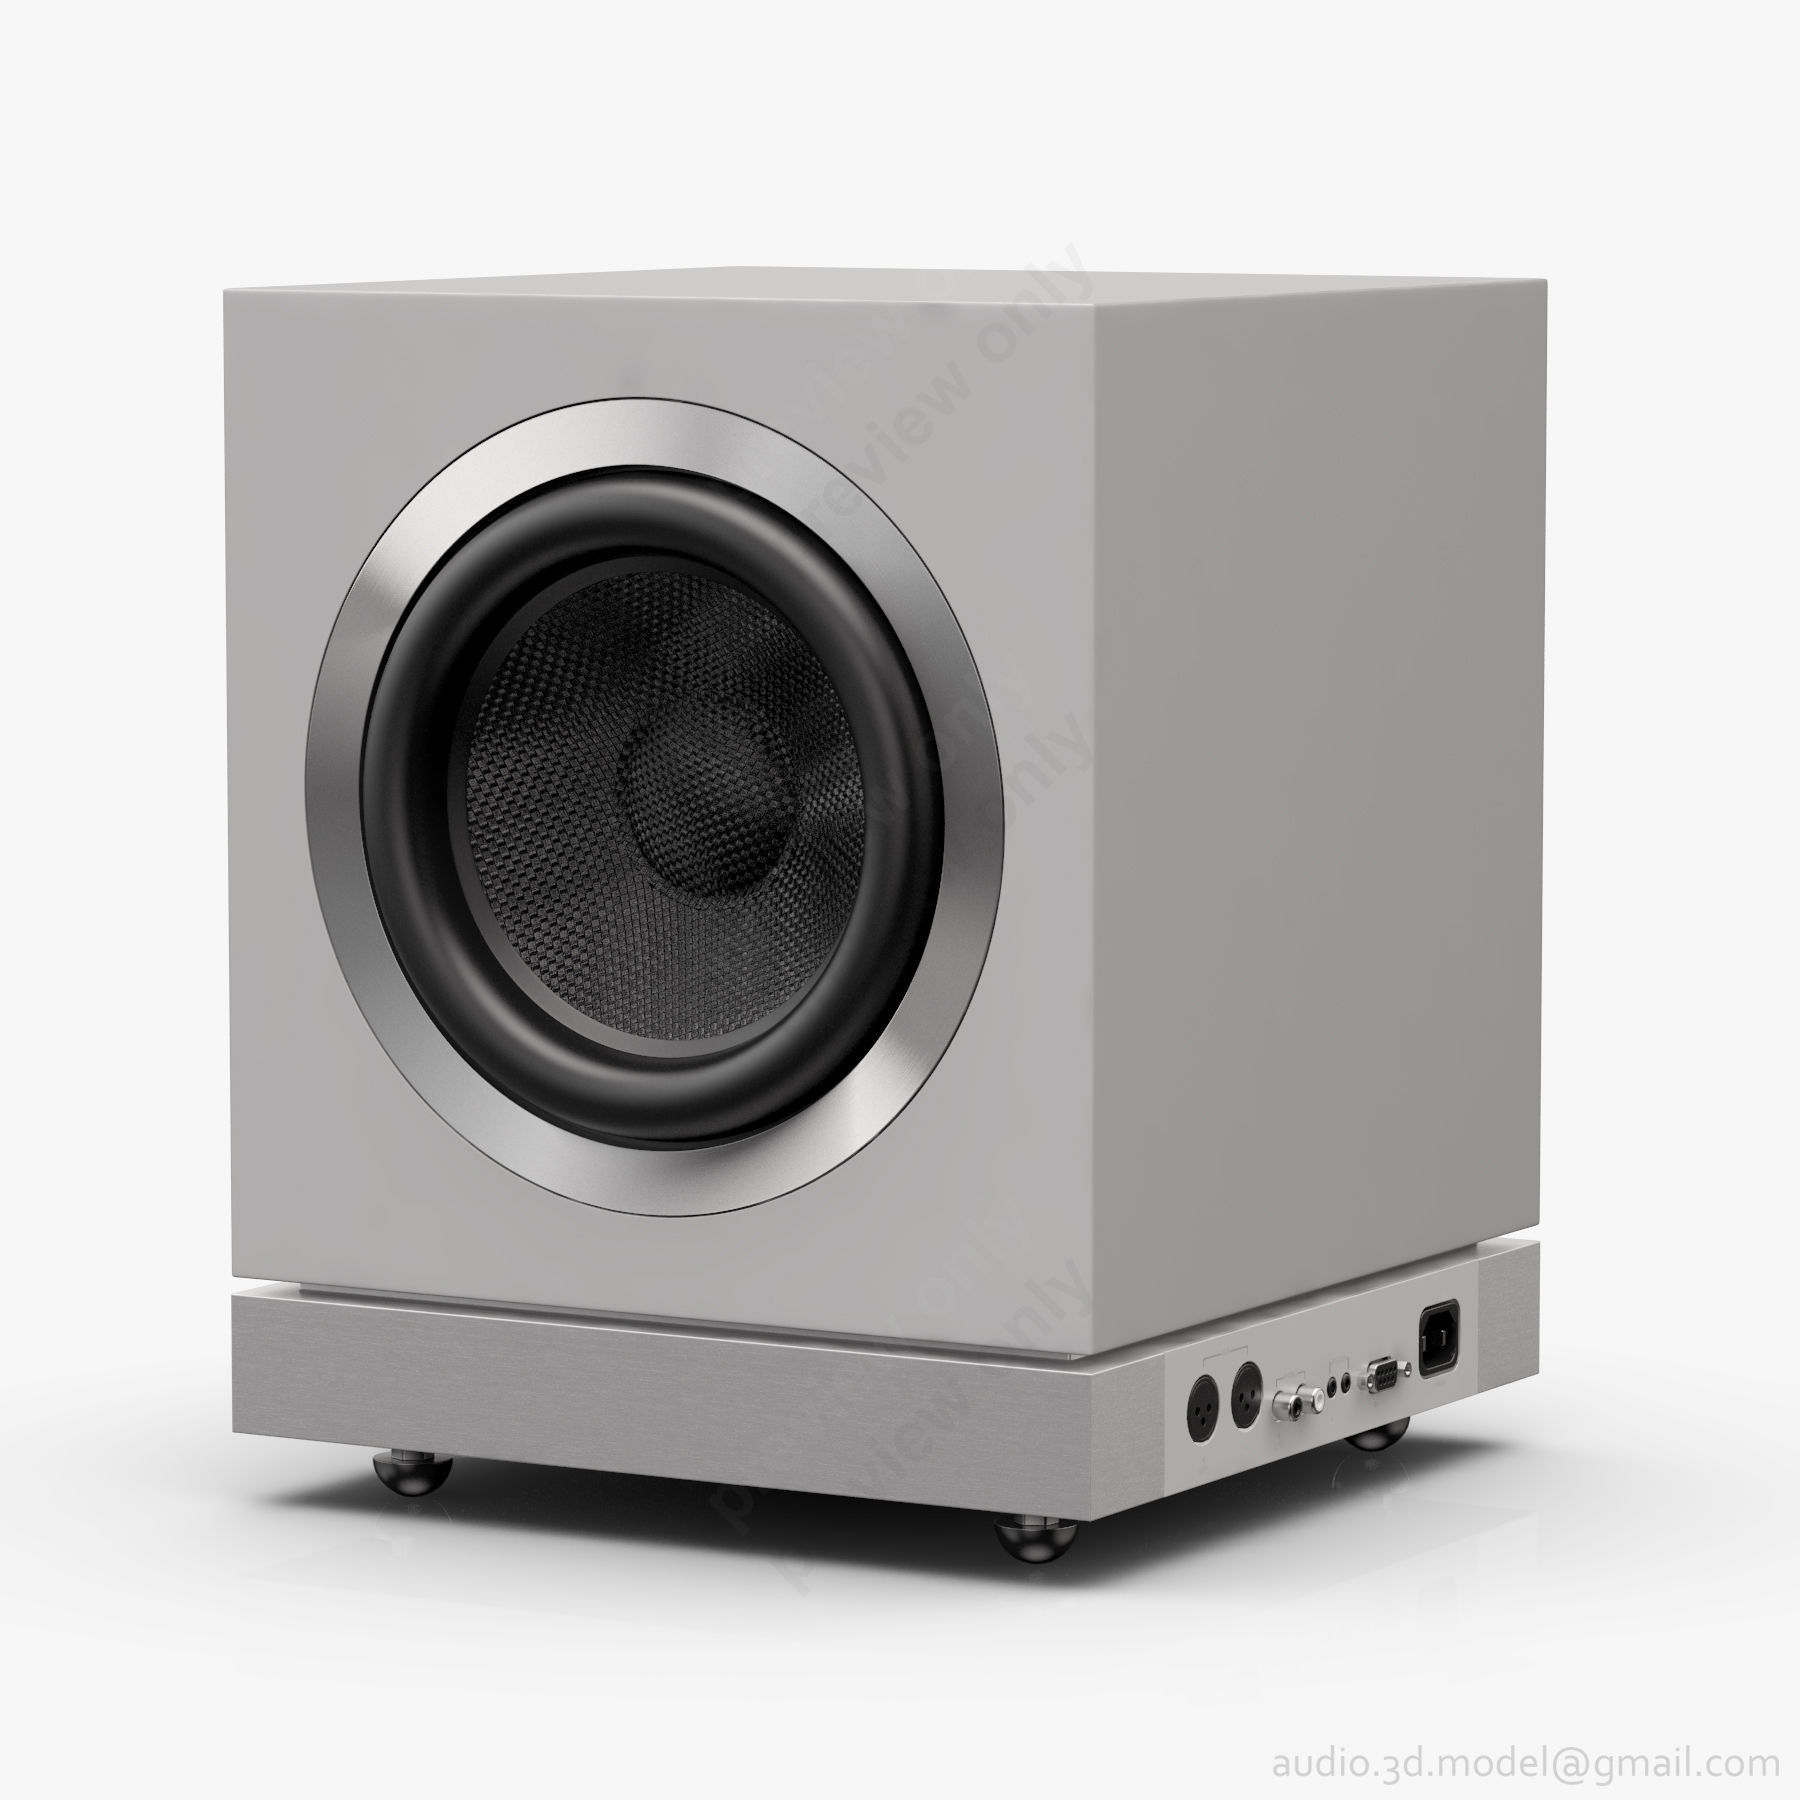 bowers-and-wilkins-db3d-satin-white-3d.jpg